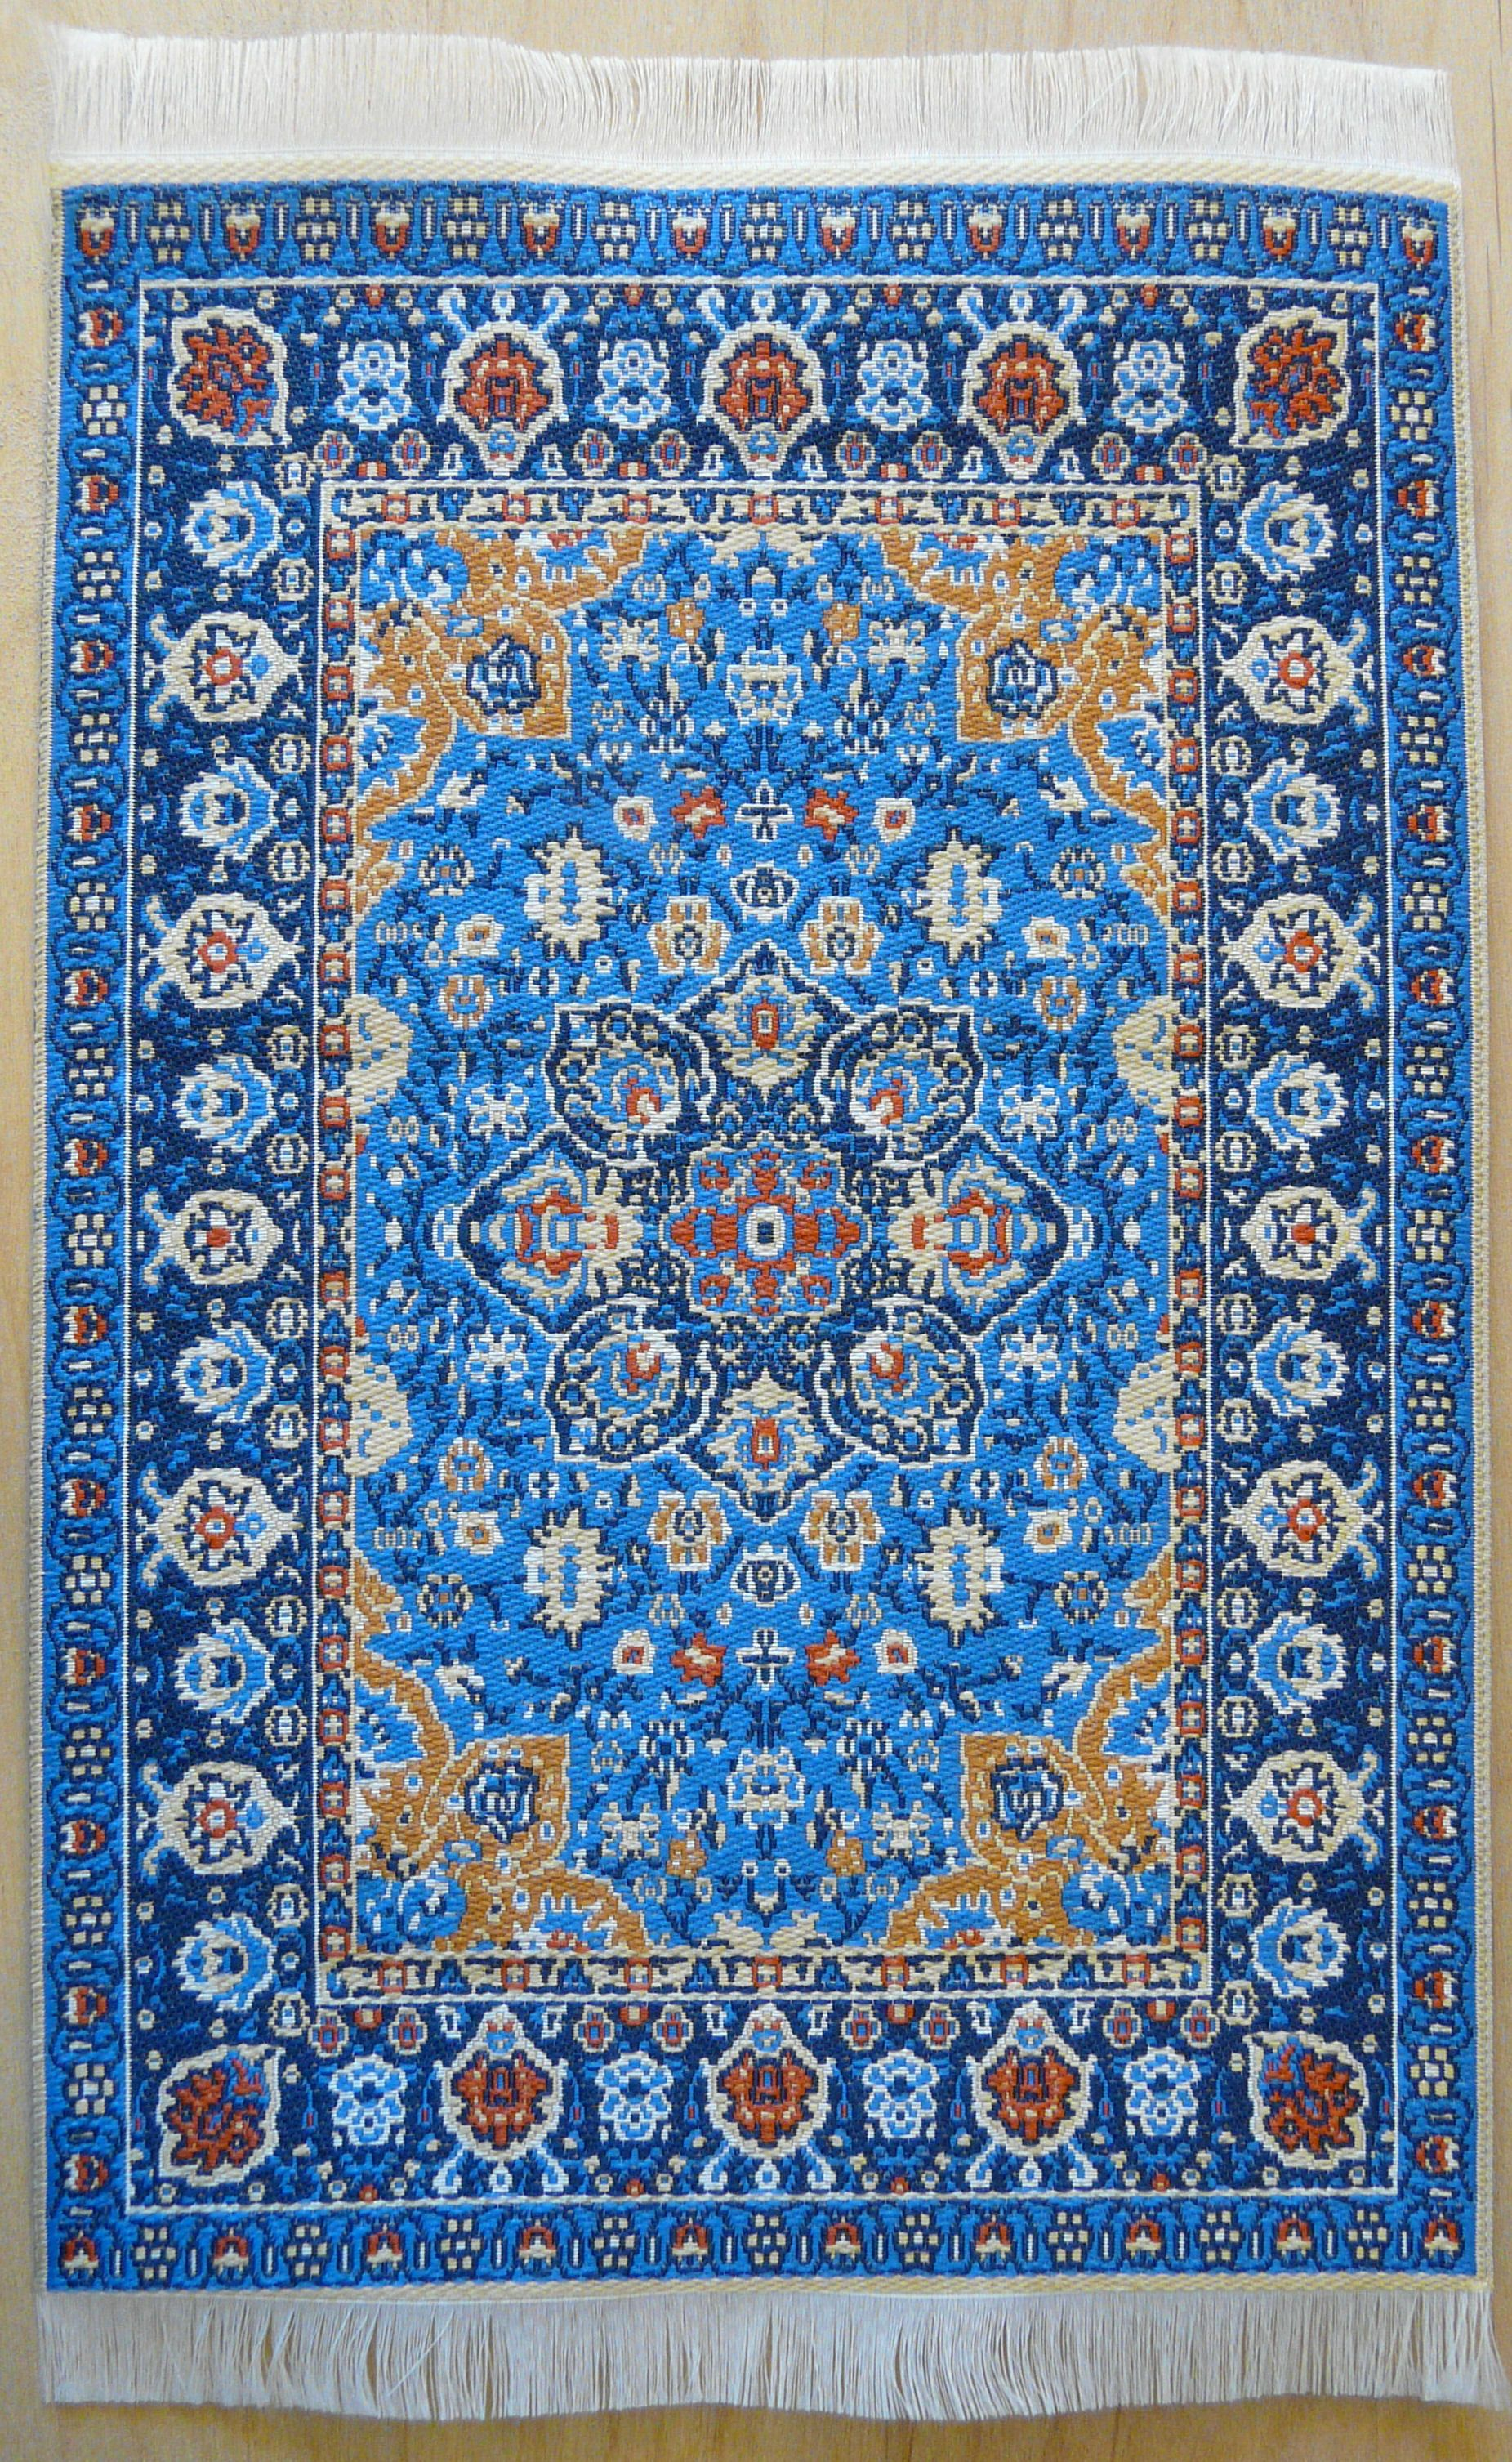 blue turkish rug w persian influence in design. Black Bedroom Furniture Sets. Home Design Ideas